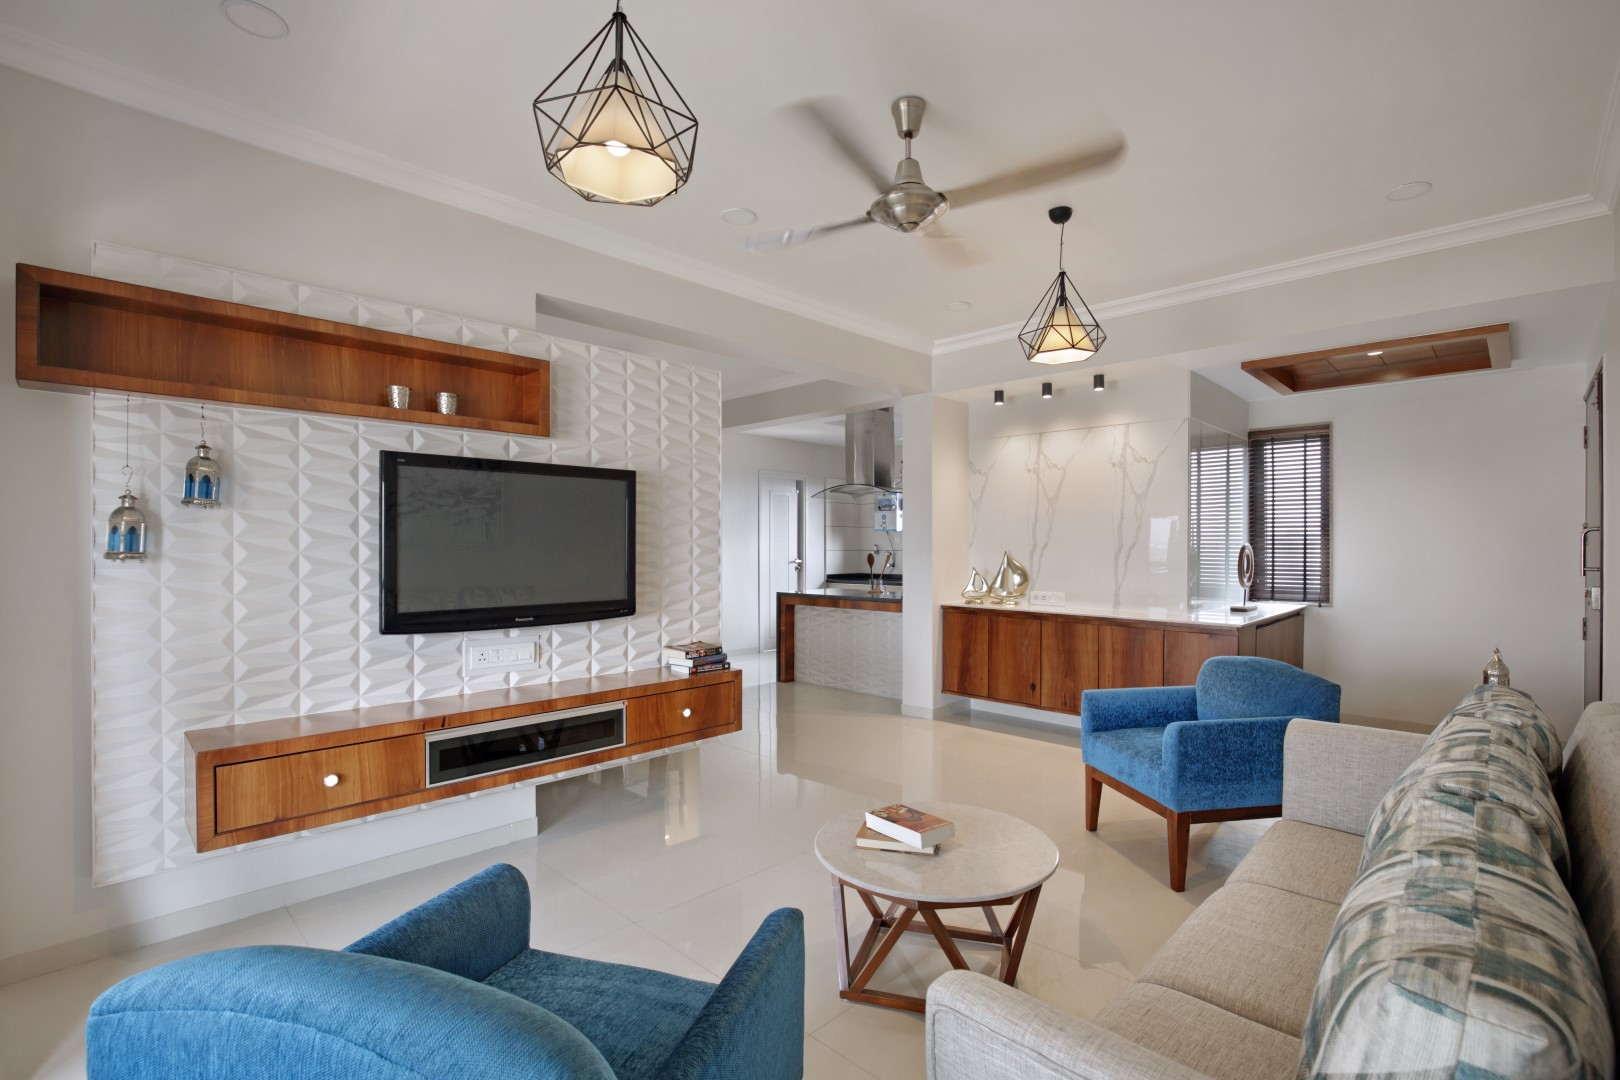 2 bhk interior design studio 7 designs the architects for Studio home designs